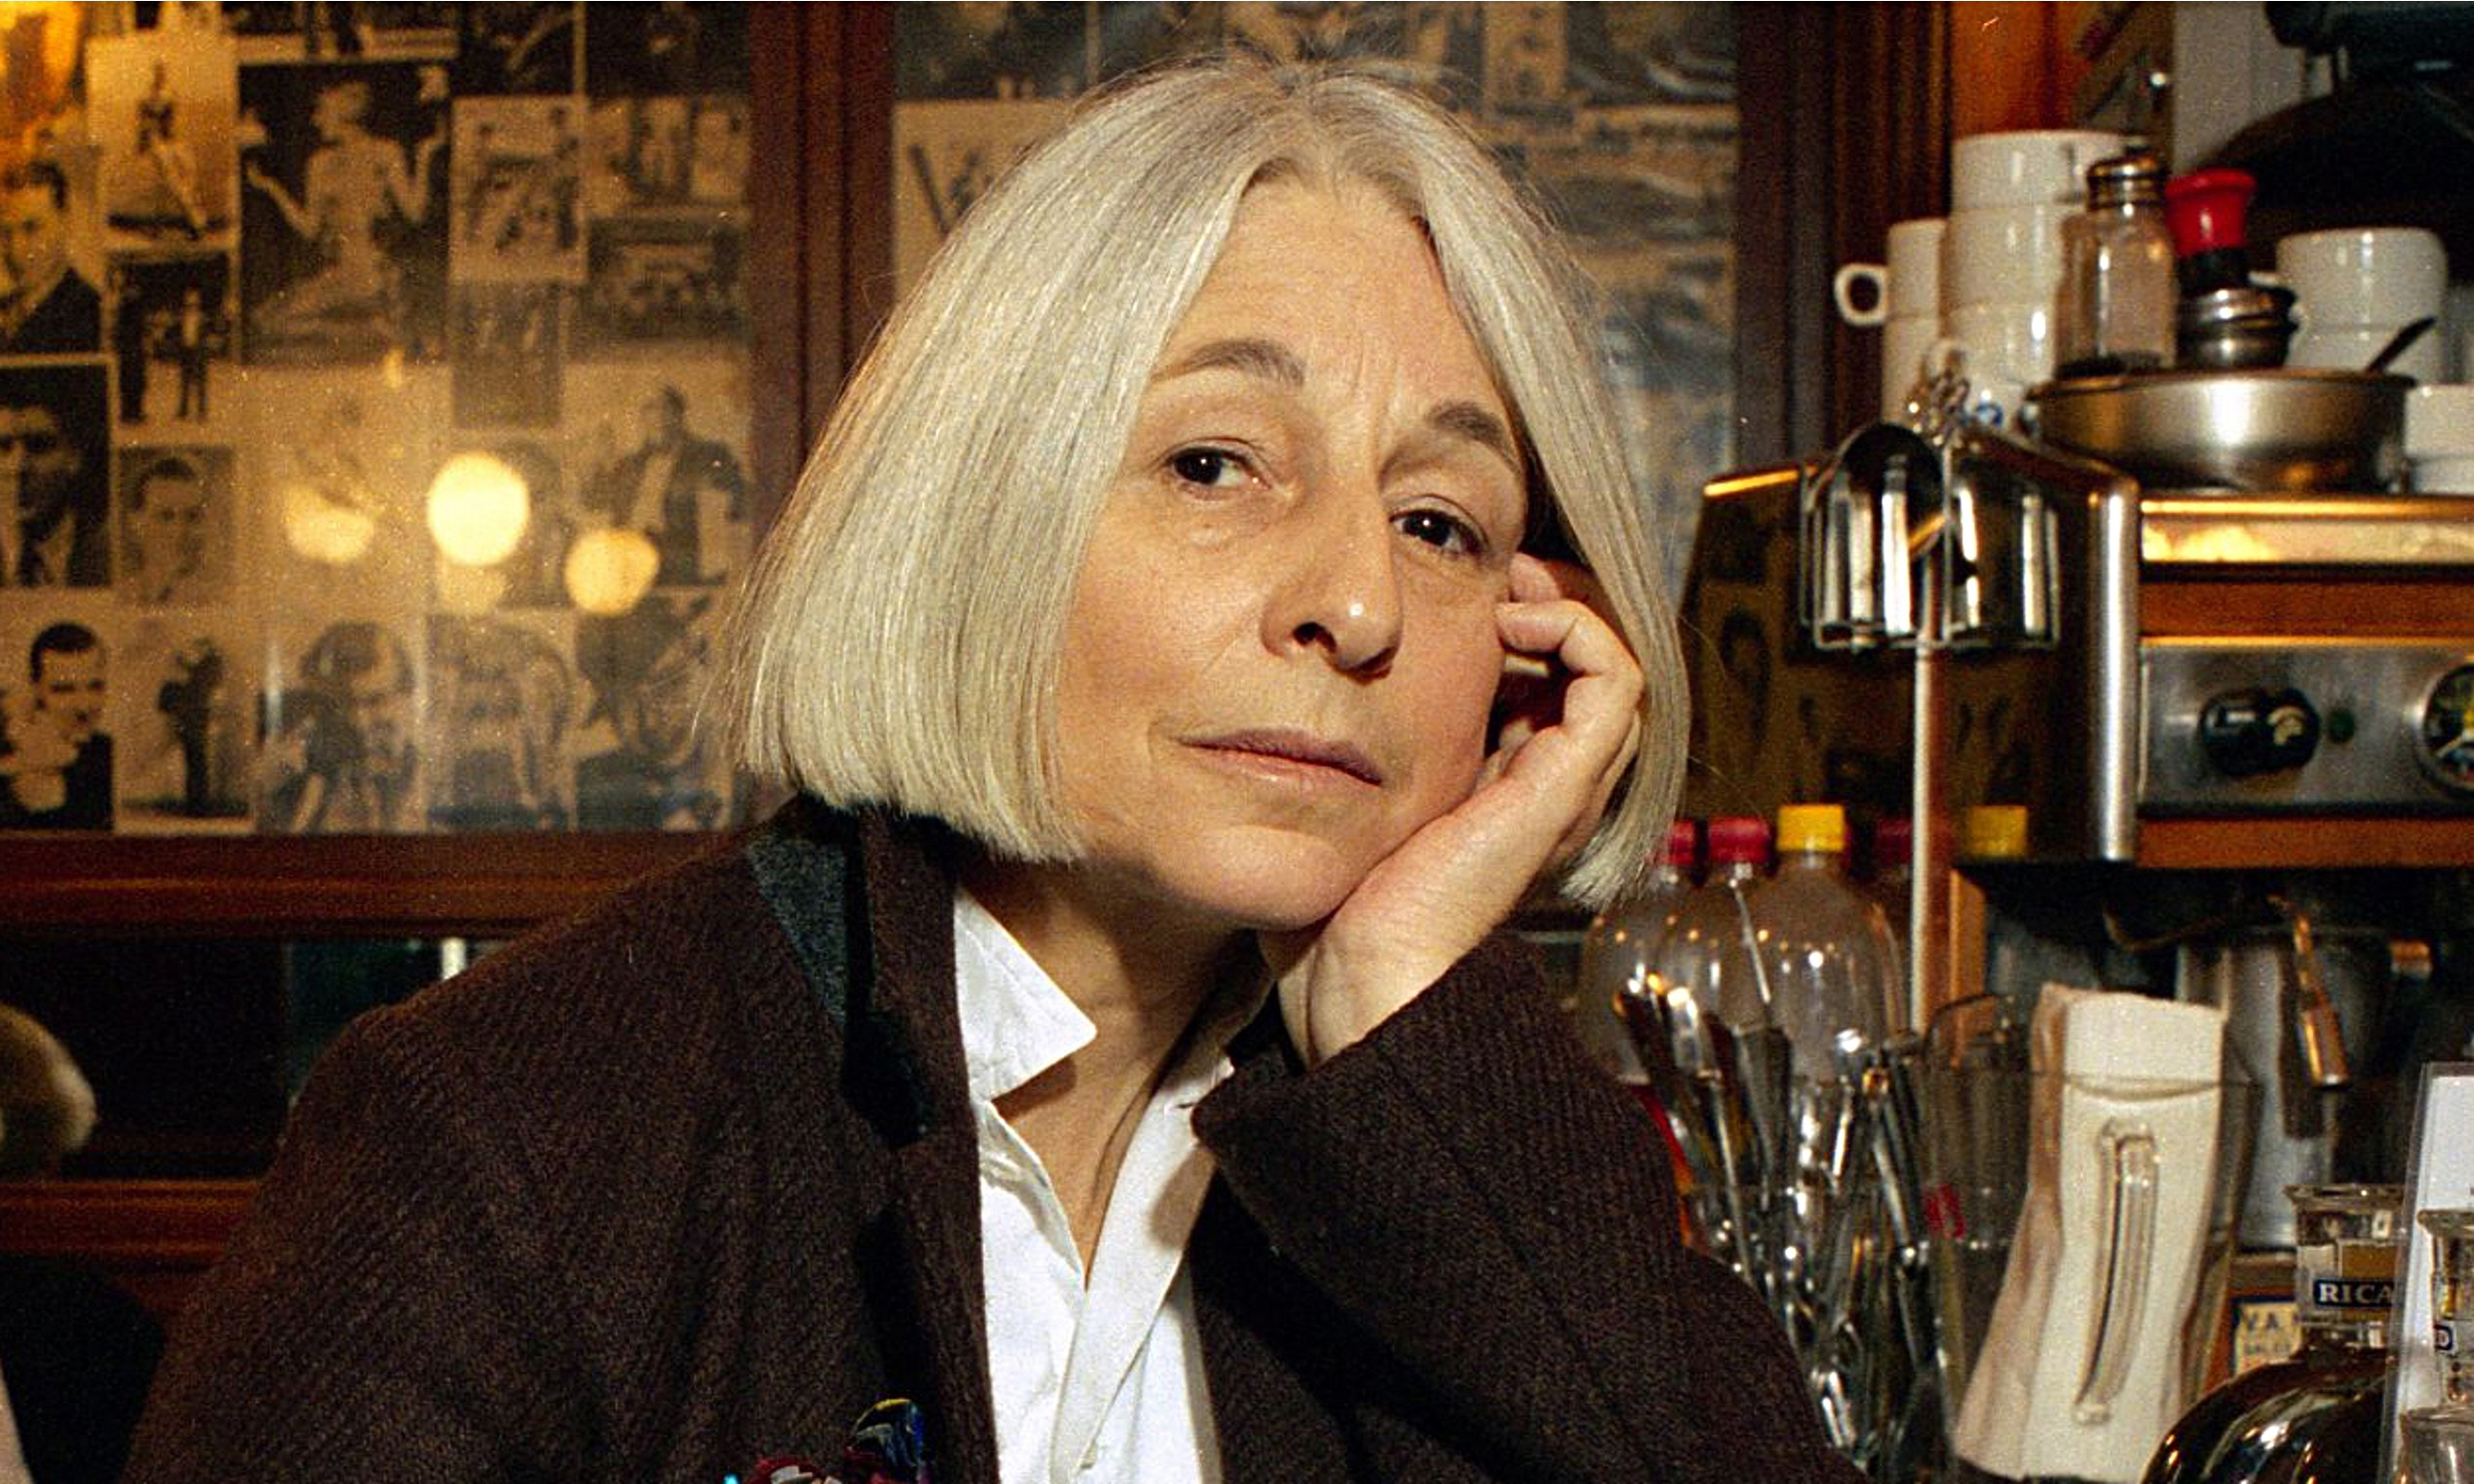 Jenny Diski applies angry eloquence to inoperable cancer diagnosis ...